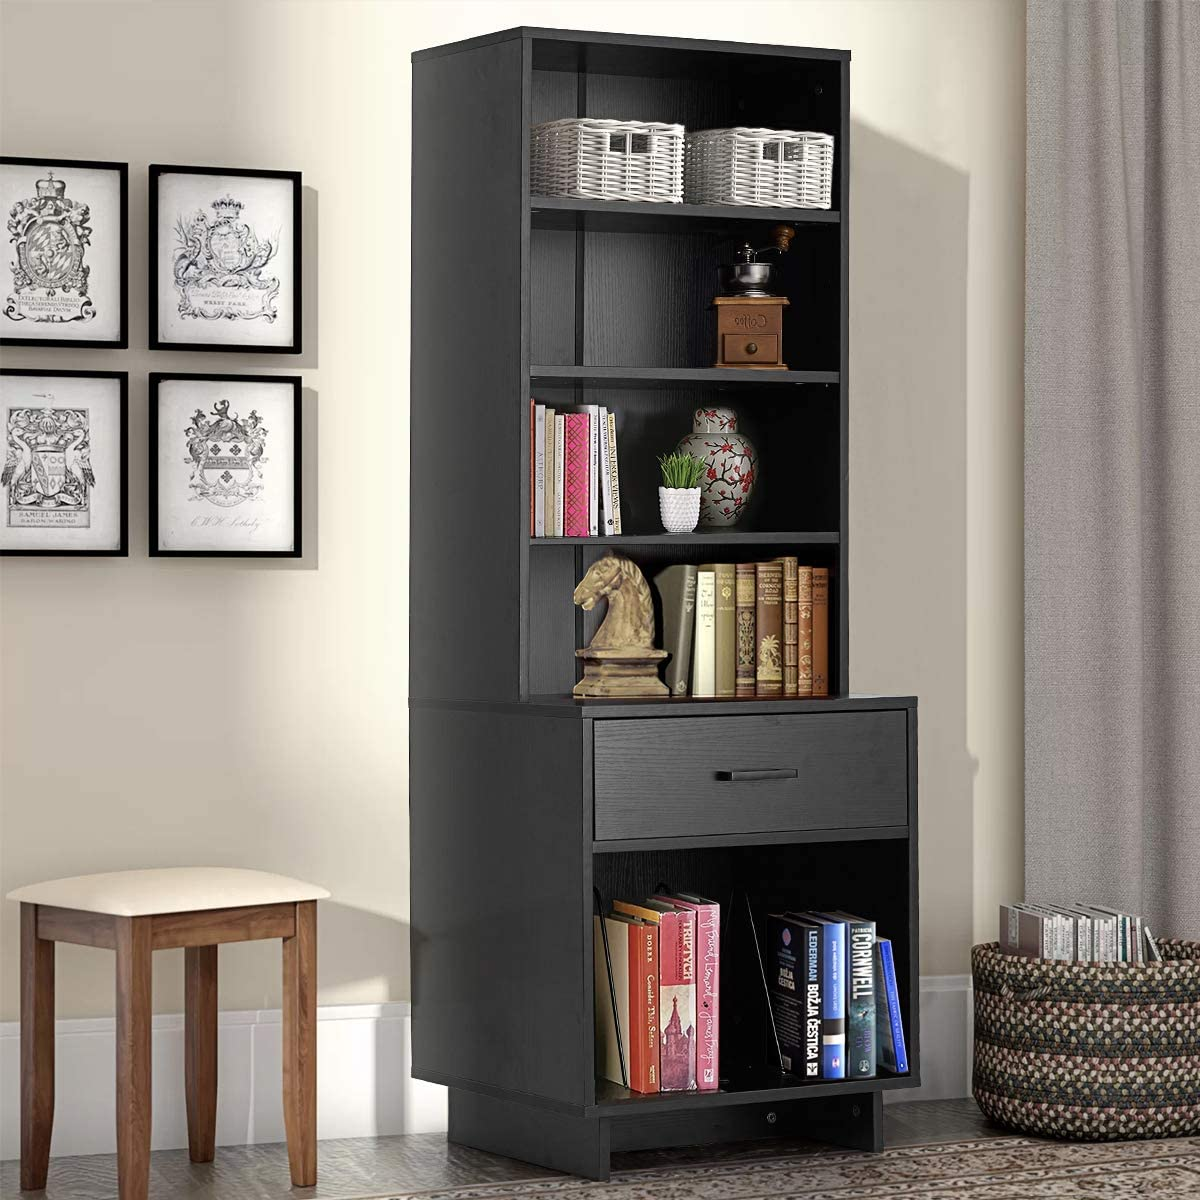 Erommy Wooden Bookcase Storage Cabinet, Bookcase Cabinets Living Room